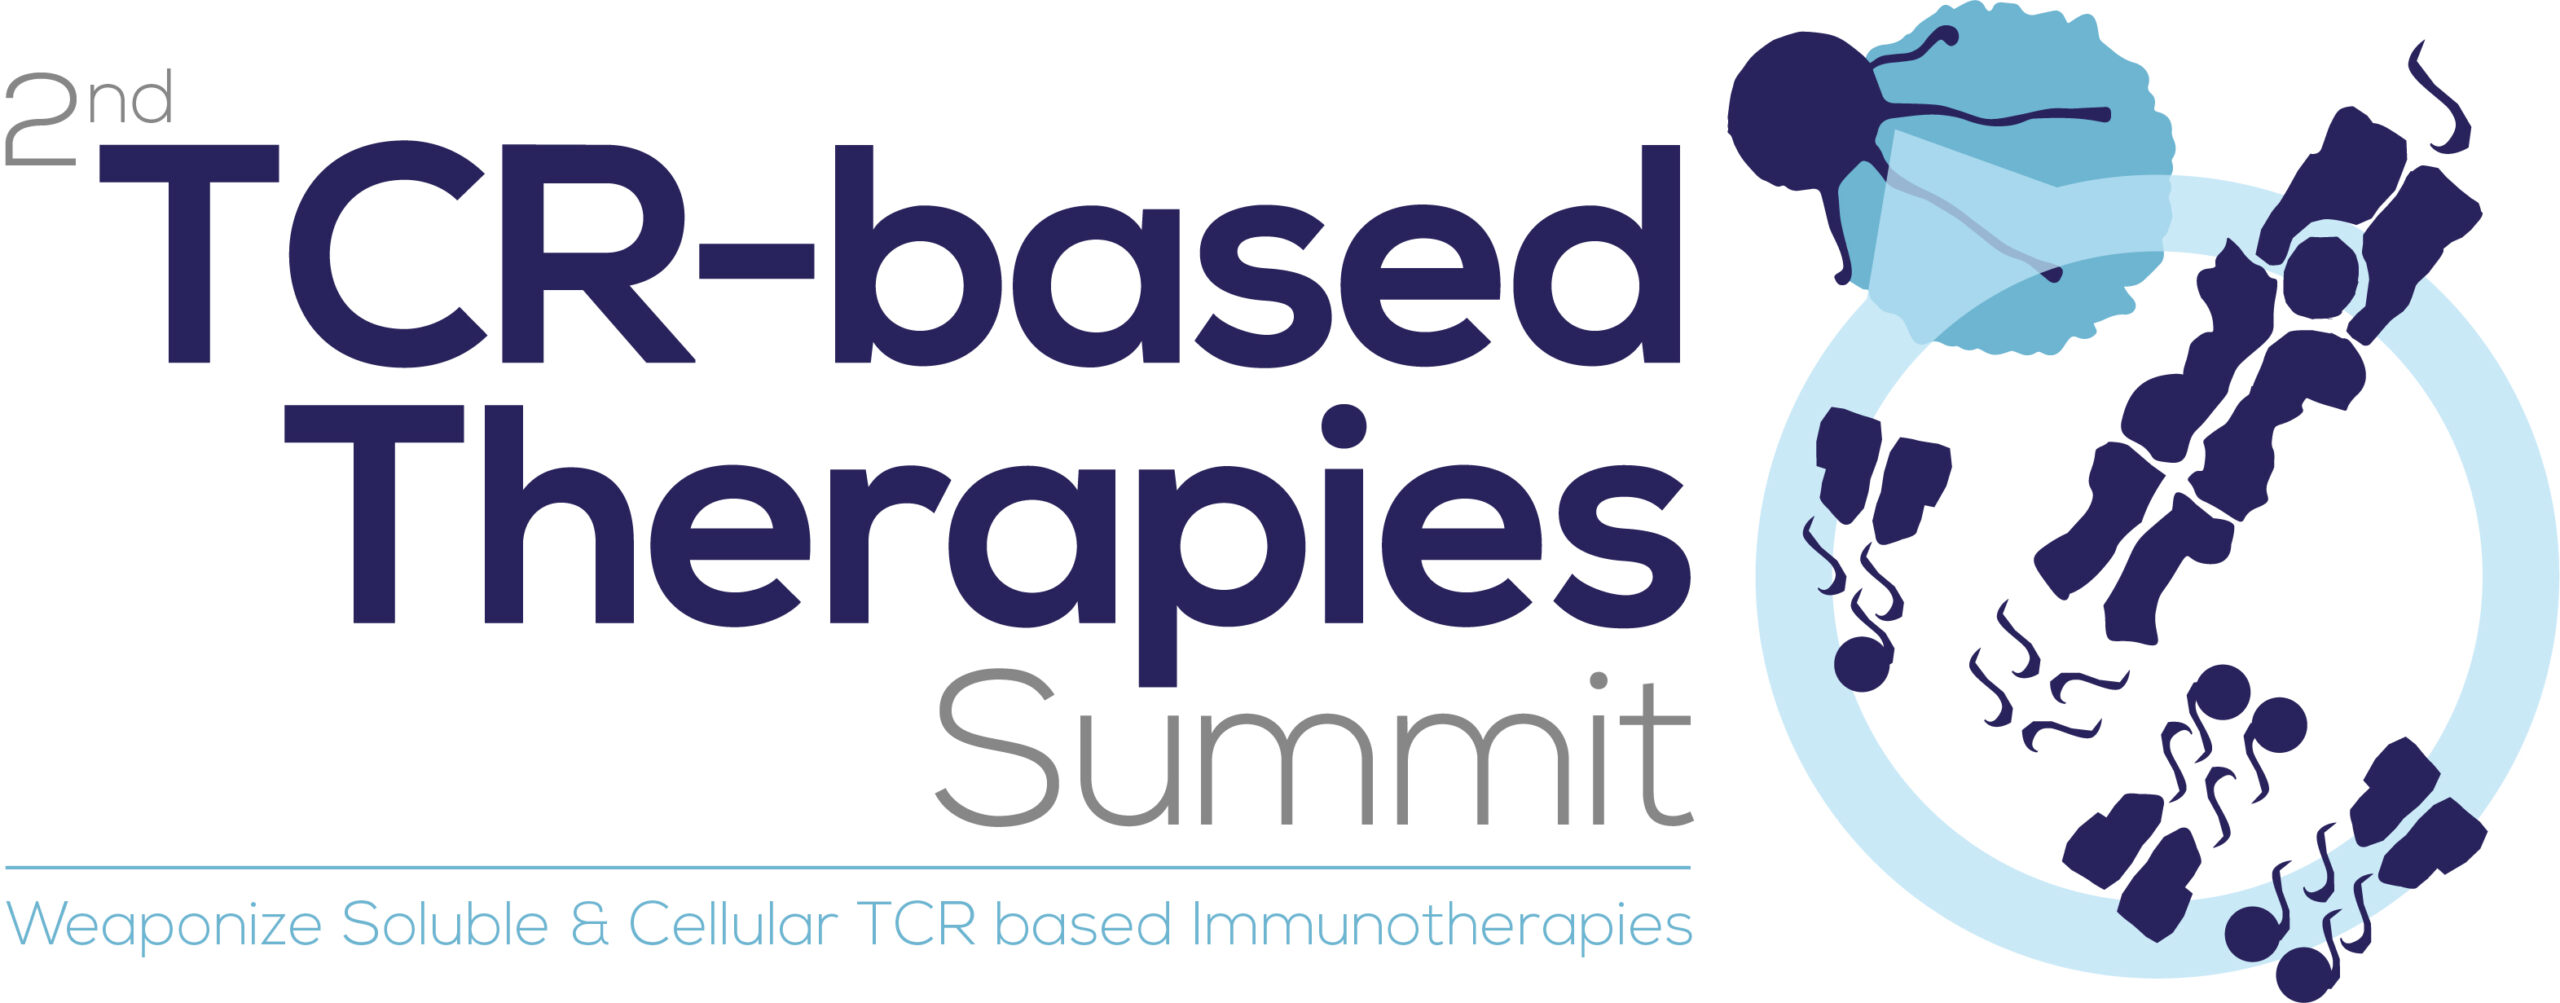 HW201208 TCR Based Therapies Summit logo update